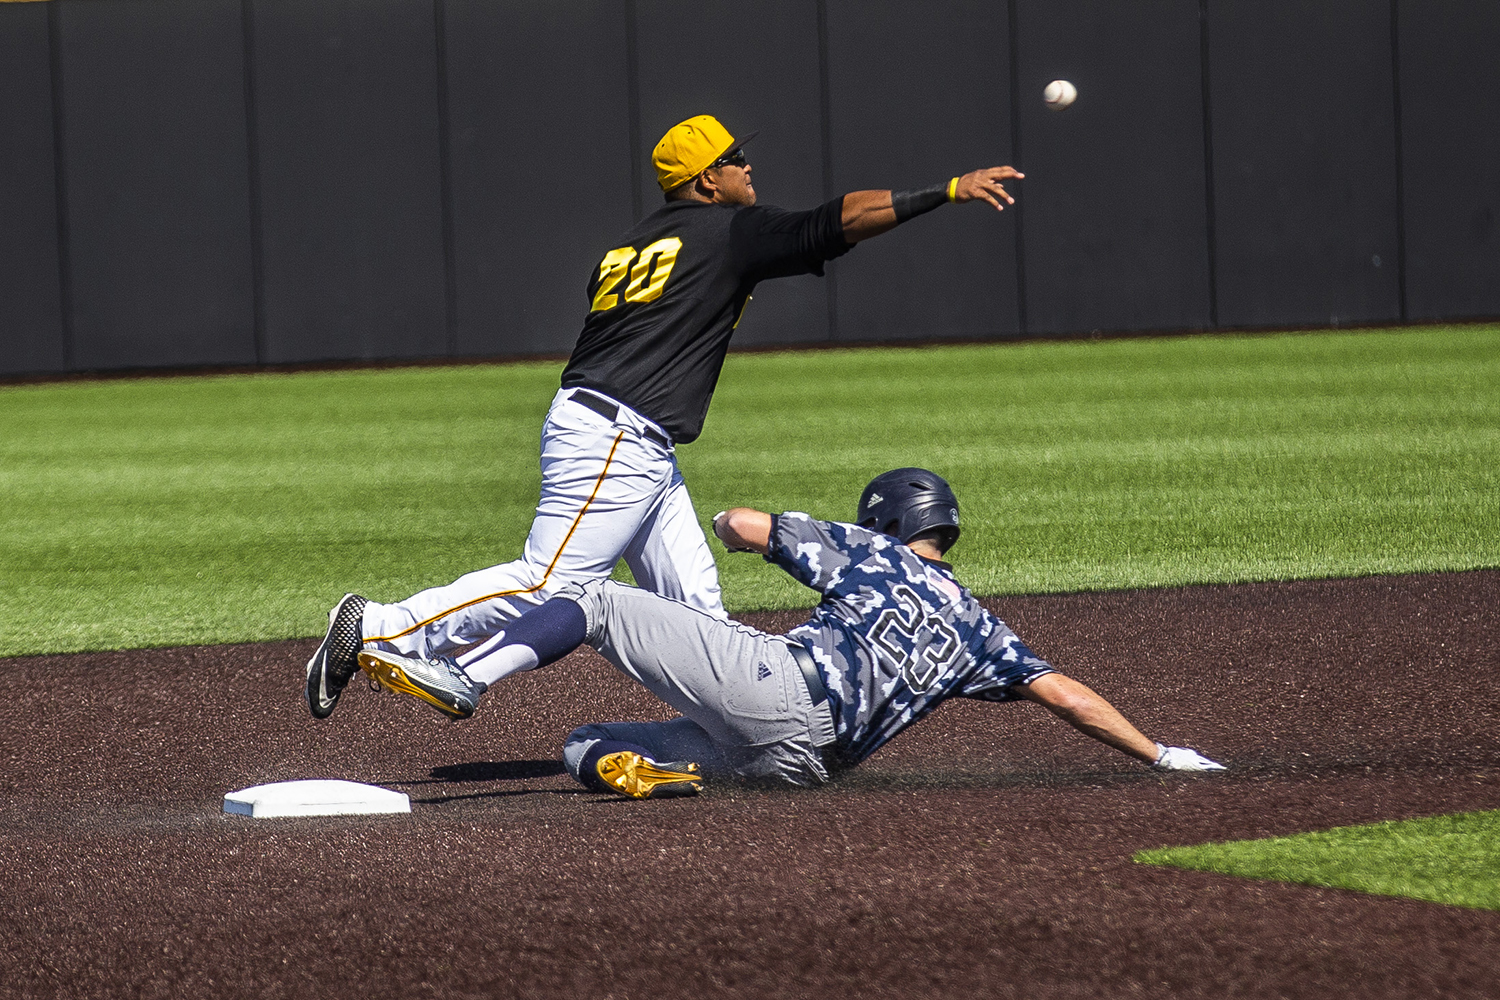 Iowa infielder Izaya Fullard throws the ball to first as UC Irvine infielder Brandon Lewis slides into the base during the game against UC Irvine at Duane Banks Field on Saturday, May 4, 2019. The Hawkeyes defeated the Anteaters 1-0.